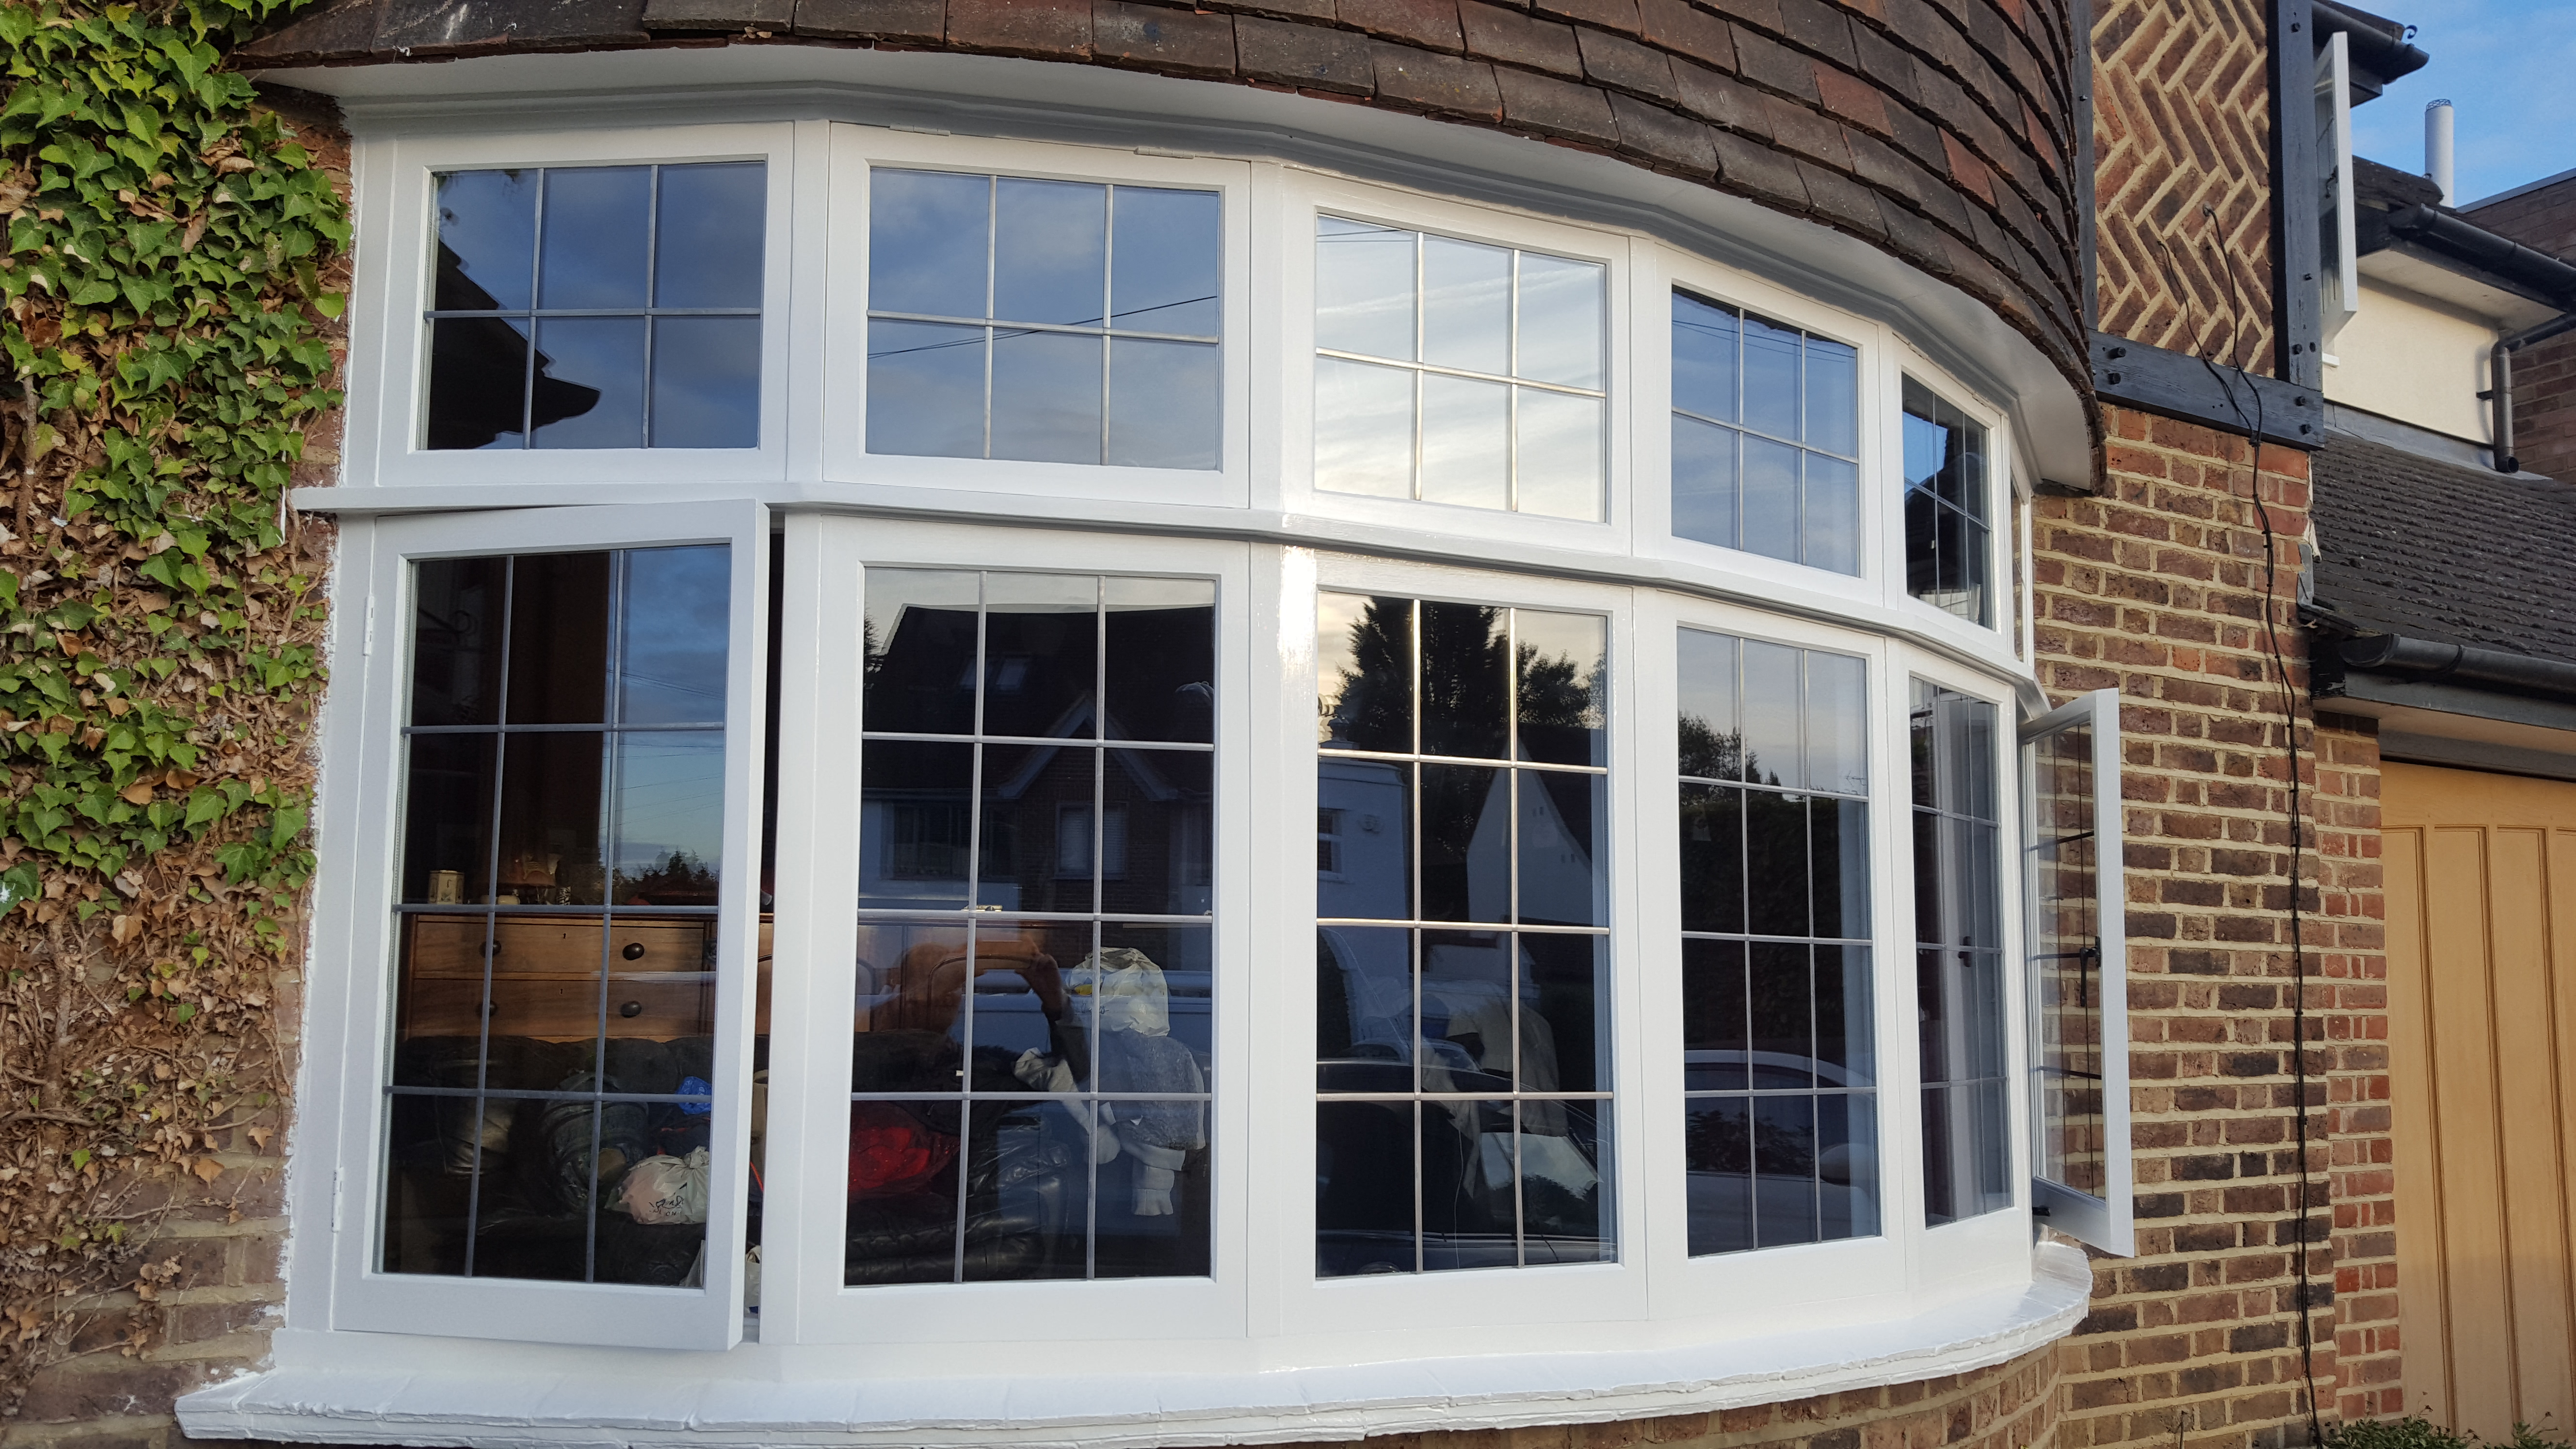 Or You If You Want To Give Us Your Design, We Can Work Out A Way To Best  Implement That While Maintaining The Architectural Integrity Of The Windows.